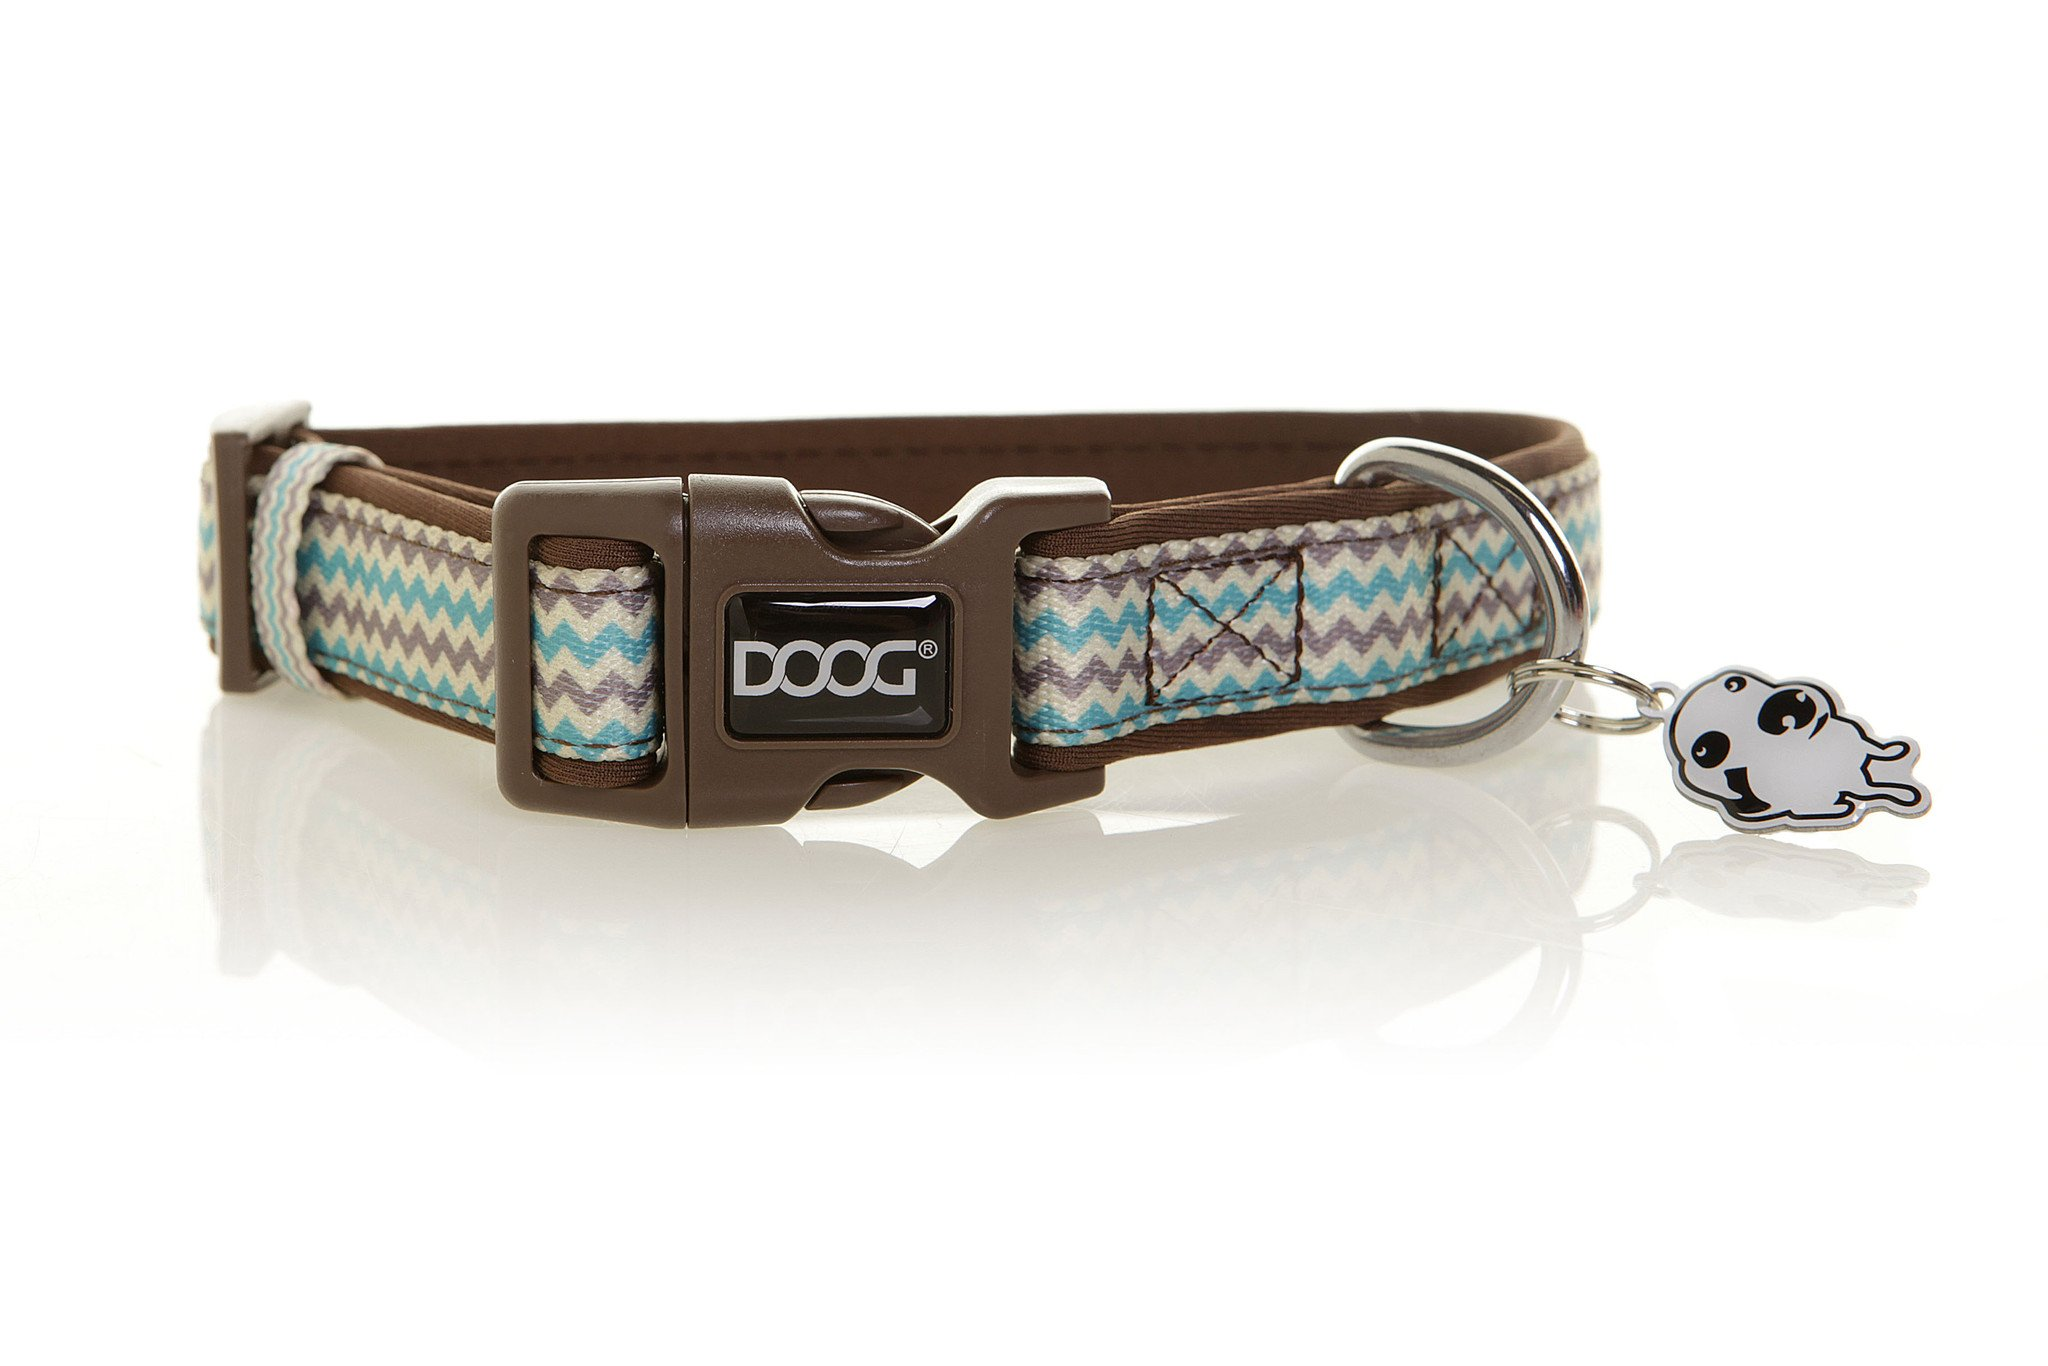 Dog Owners Outdoor Gear COLBBZ-S